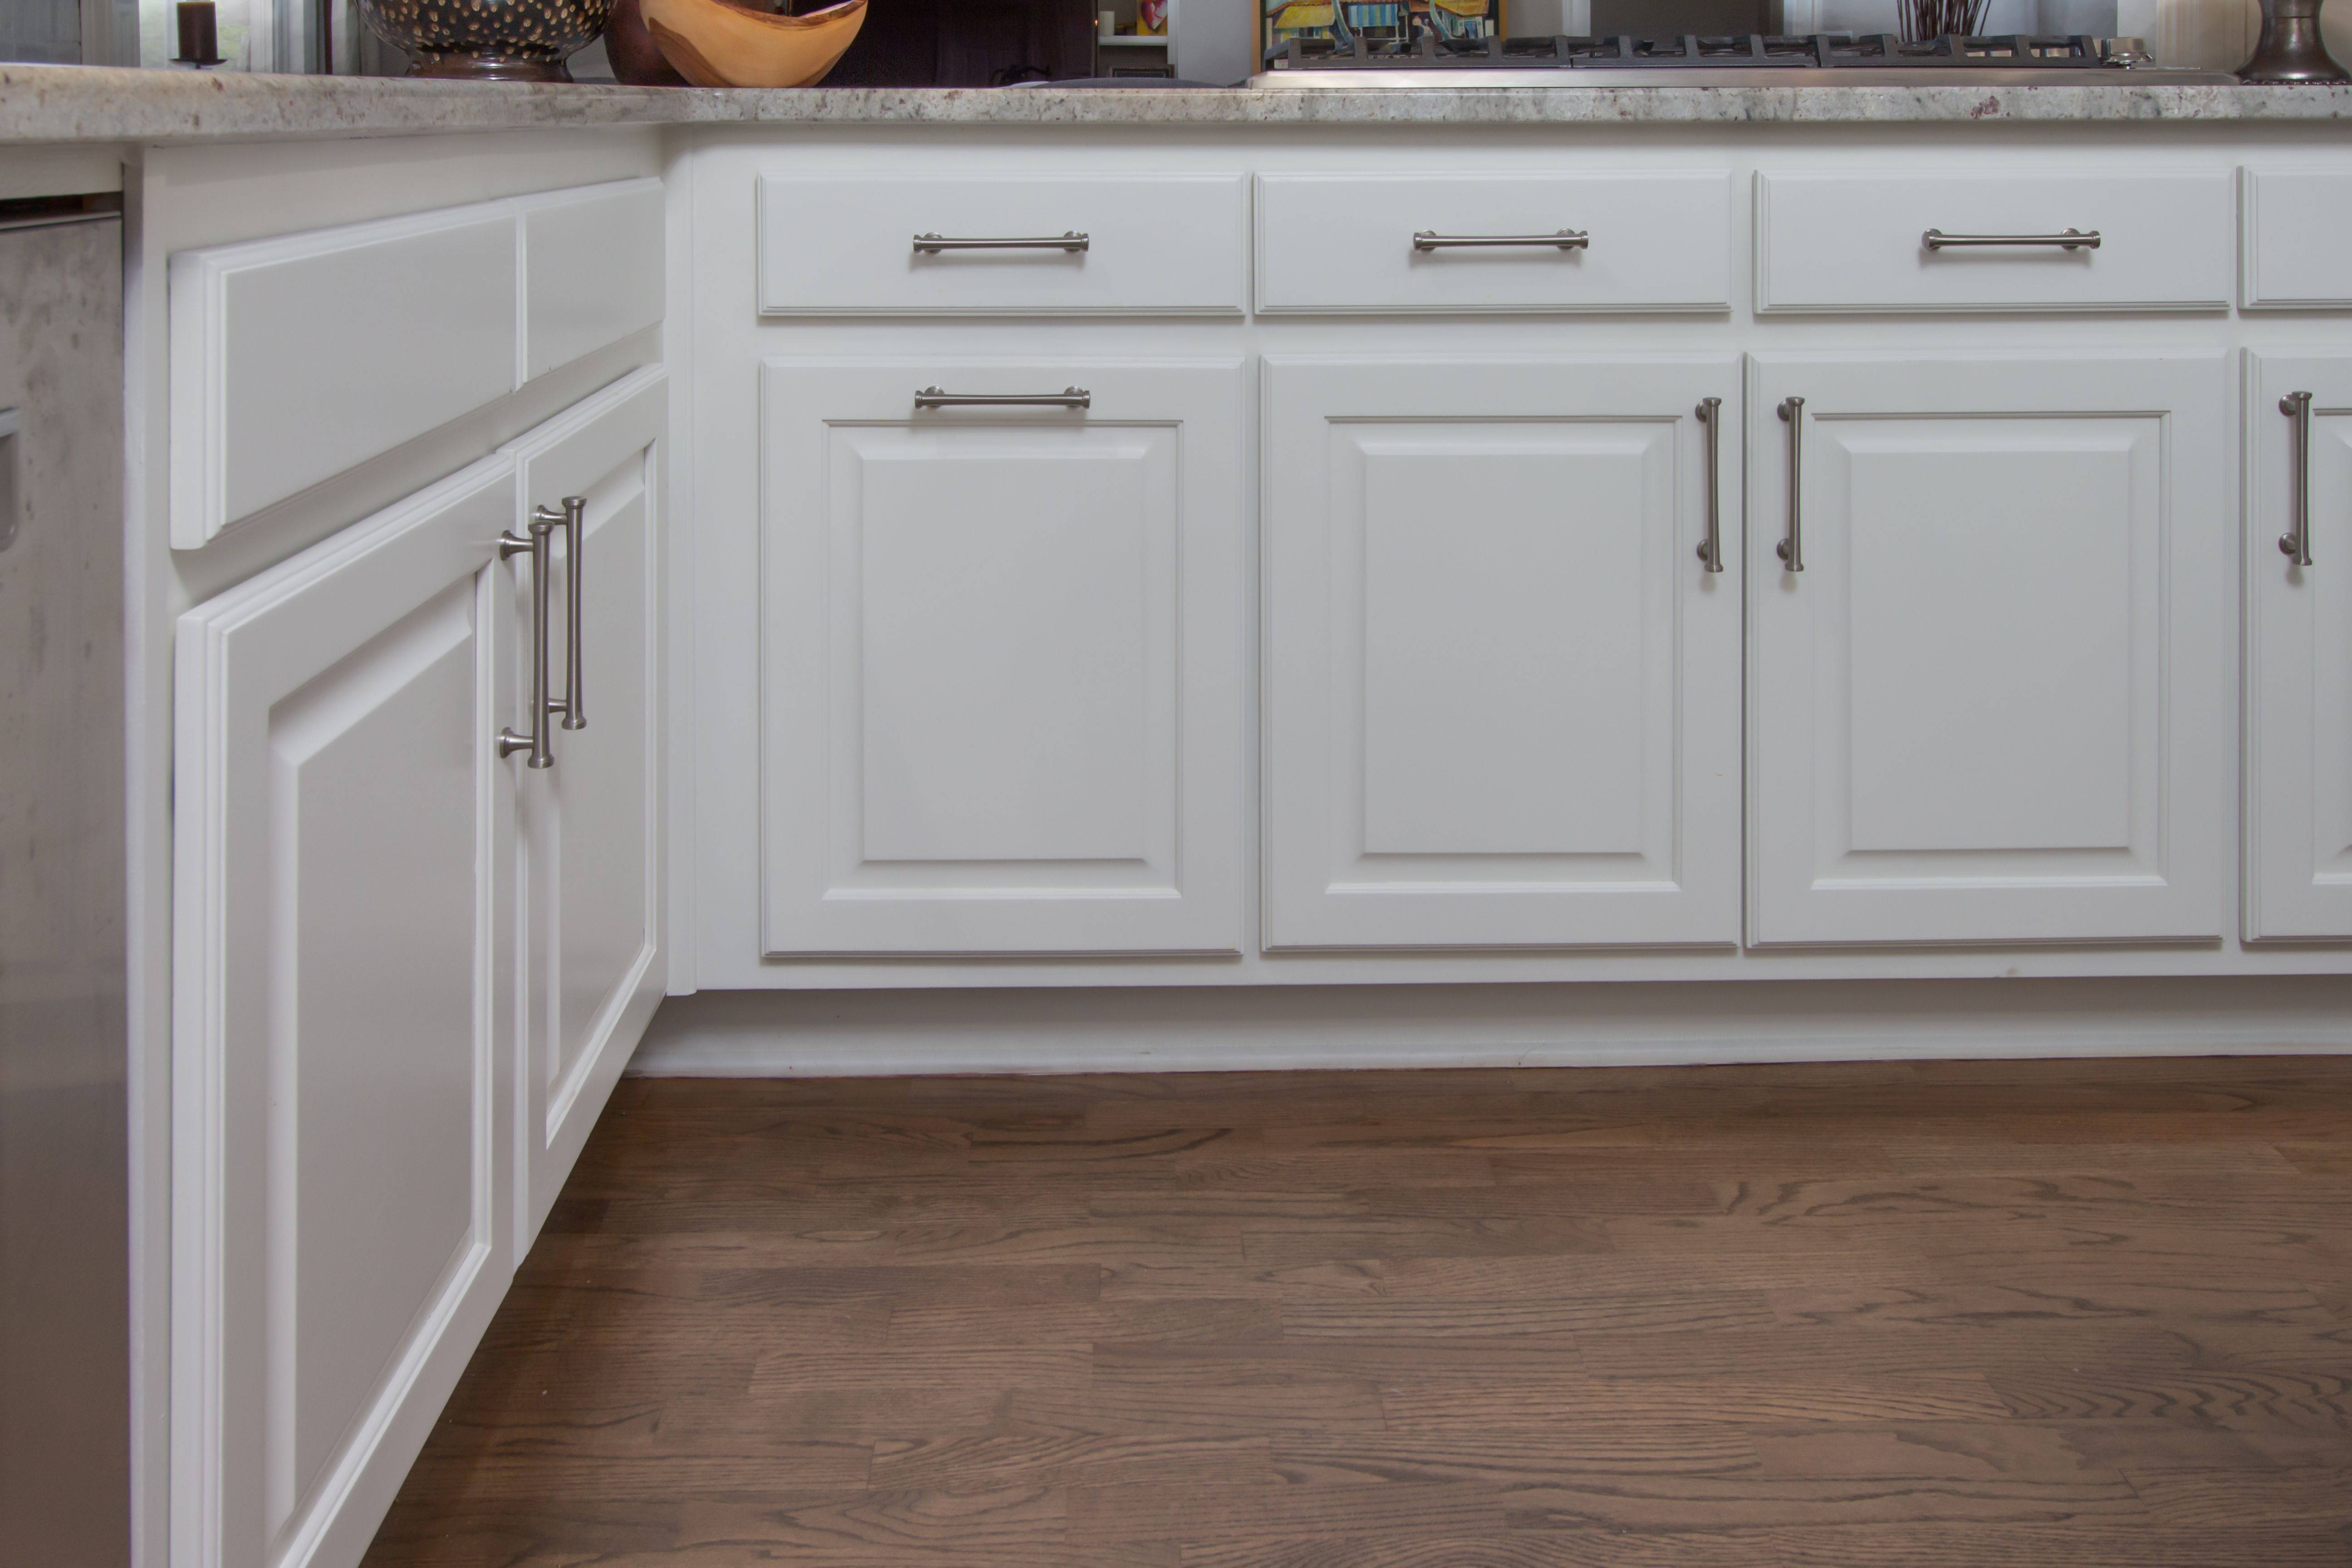 Bright White Raised Panel Cabinets With Brush Nickel Cabinet Handles From Atlas Hardware Raised Panel Cabinets Paint Cabinets White Kitchen Inspirations